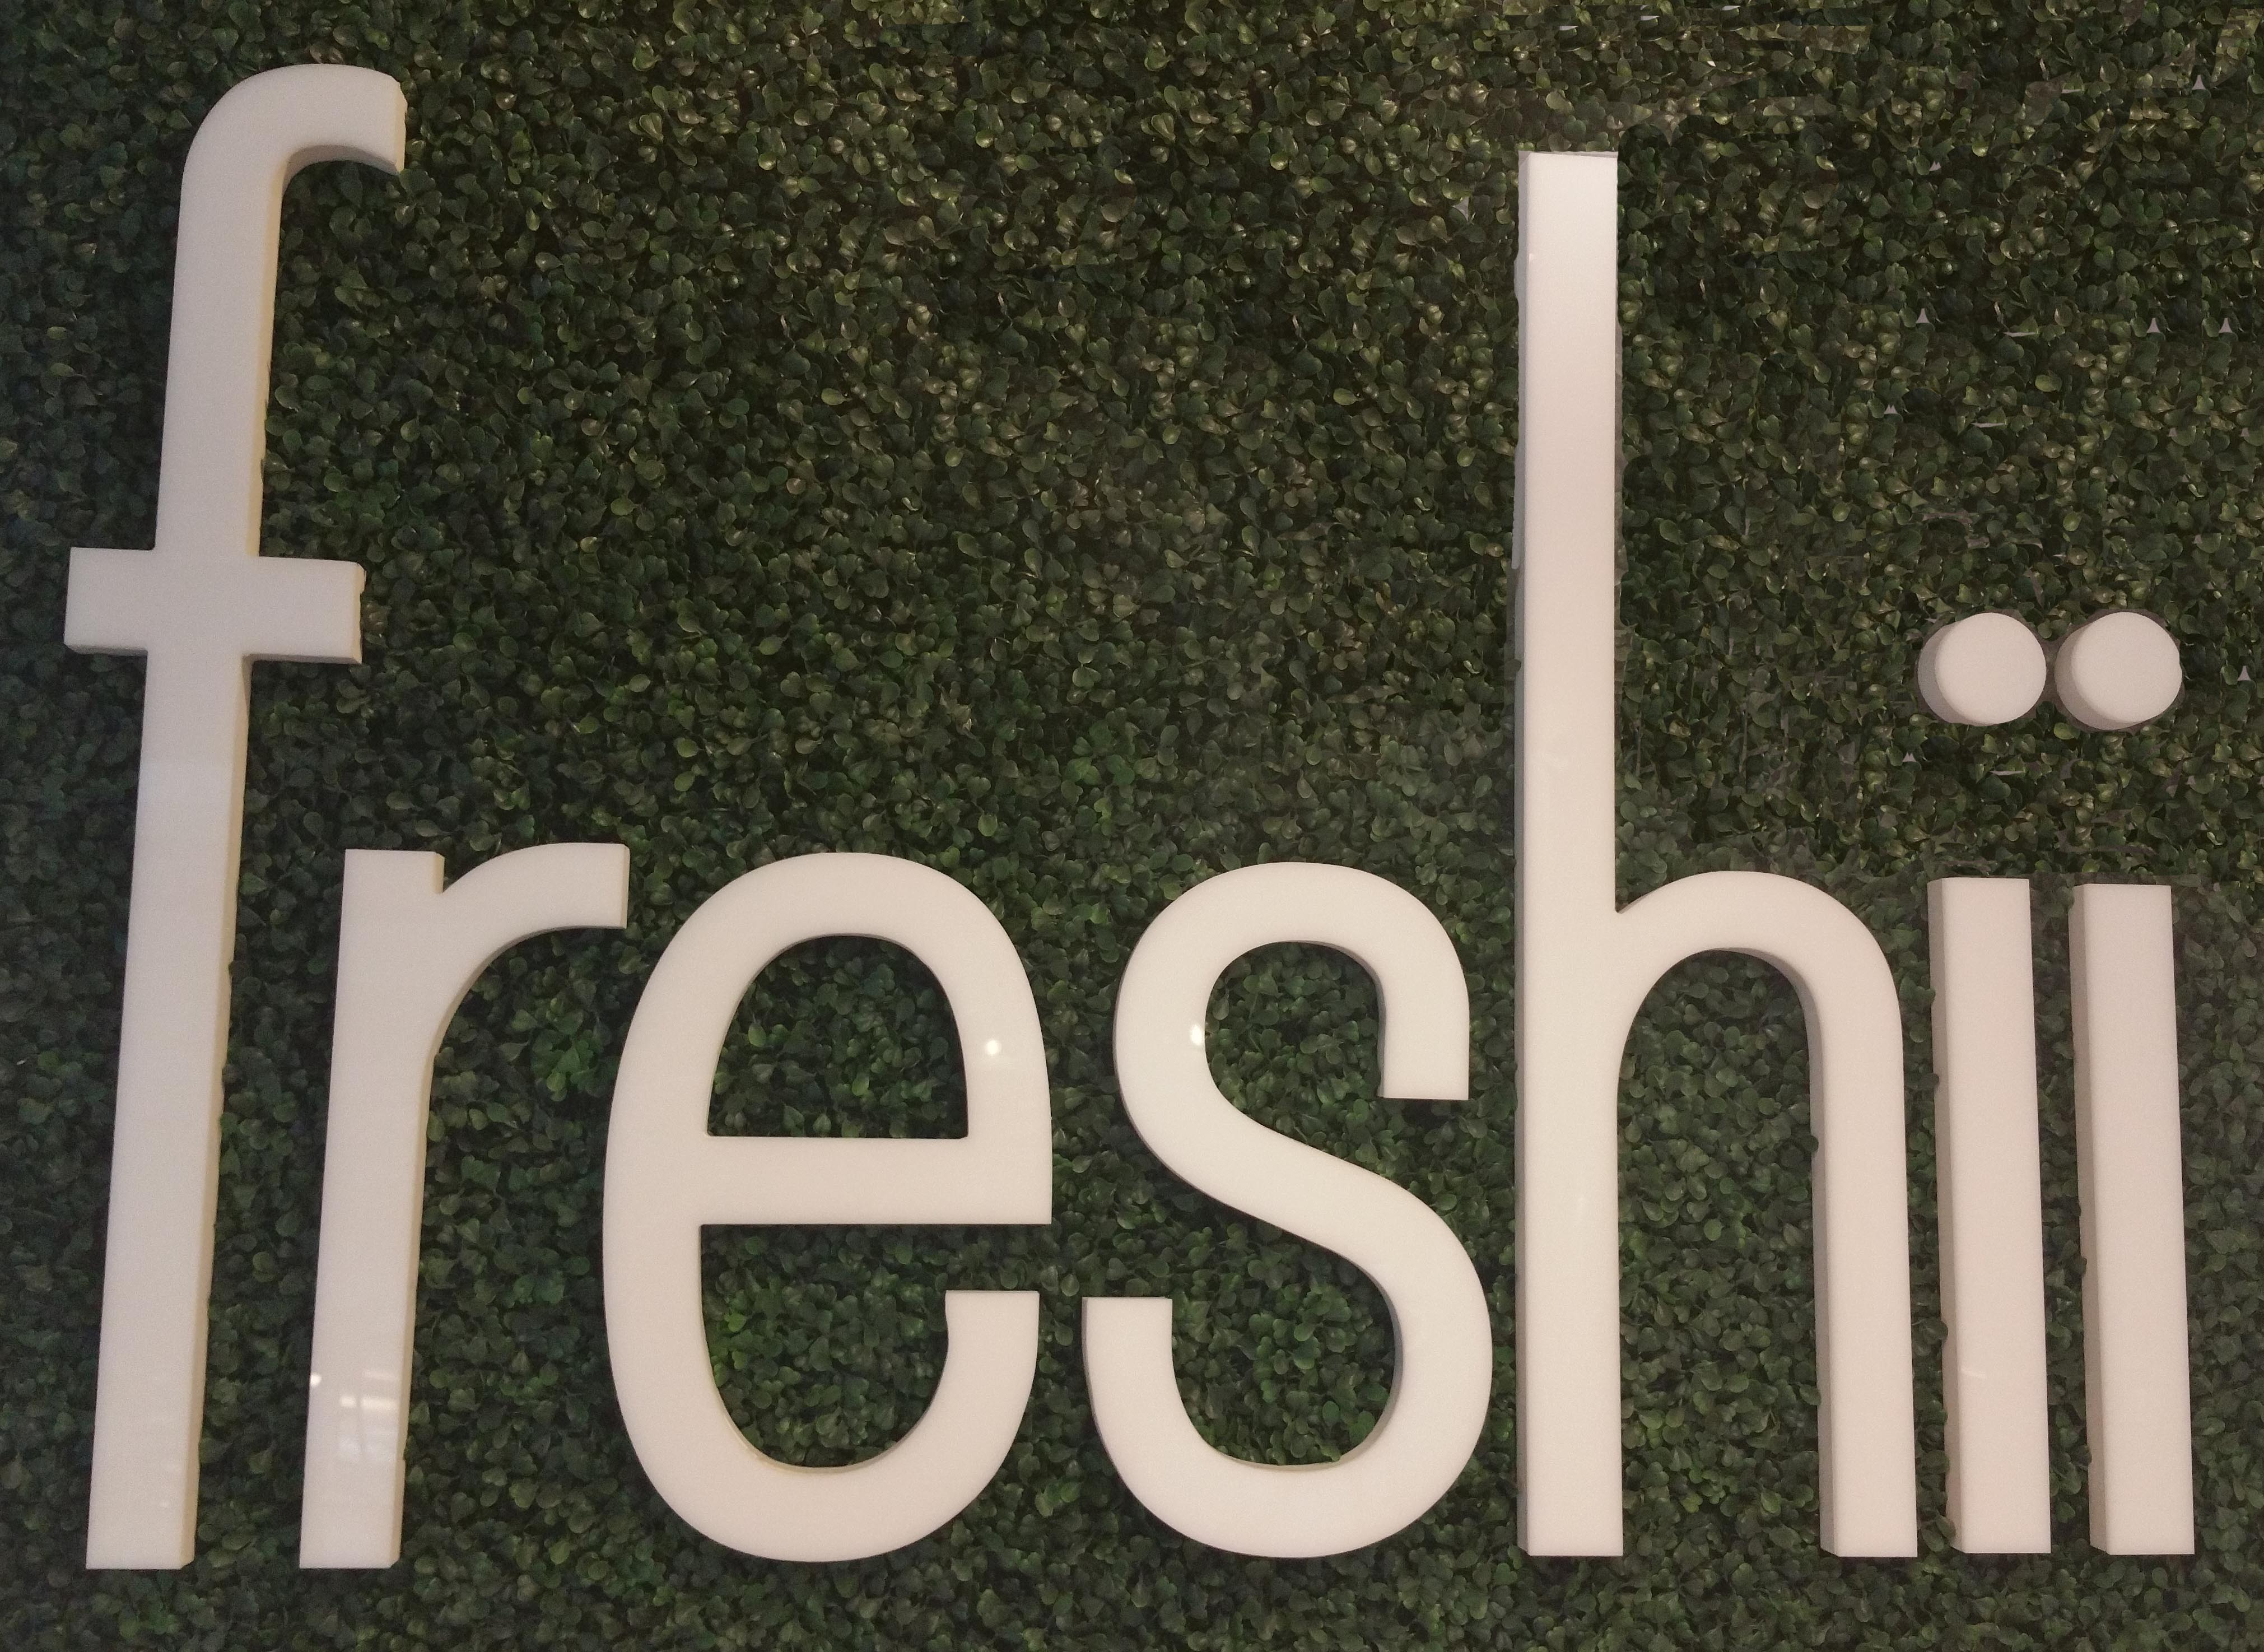 Picture of Freshii Grass Logo